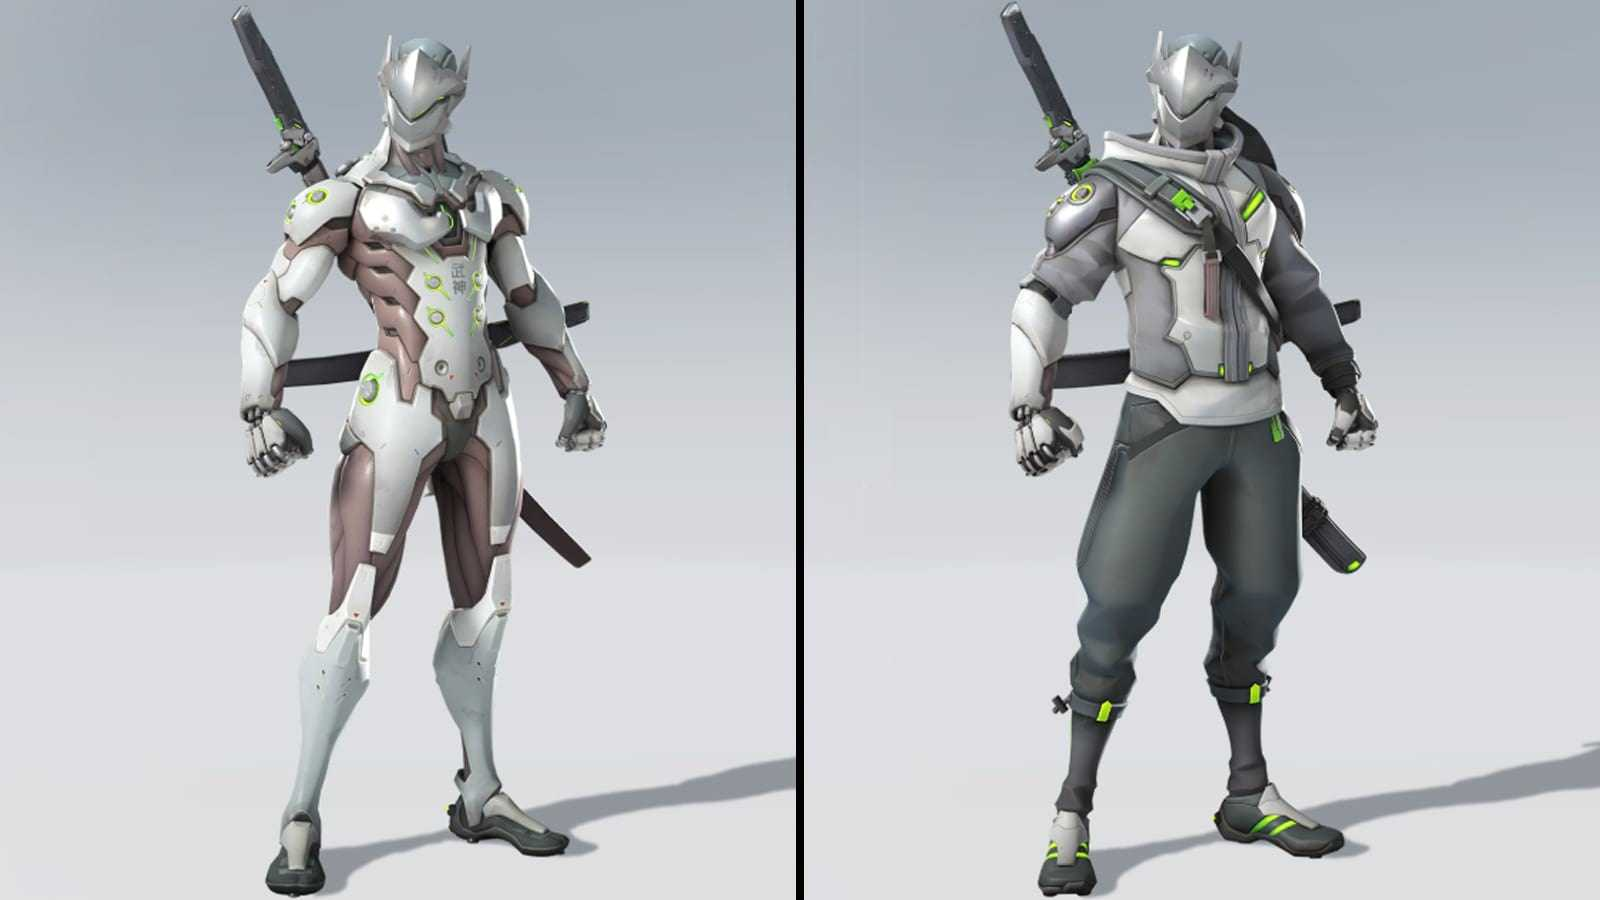 genji-character-model-comparison-ow2